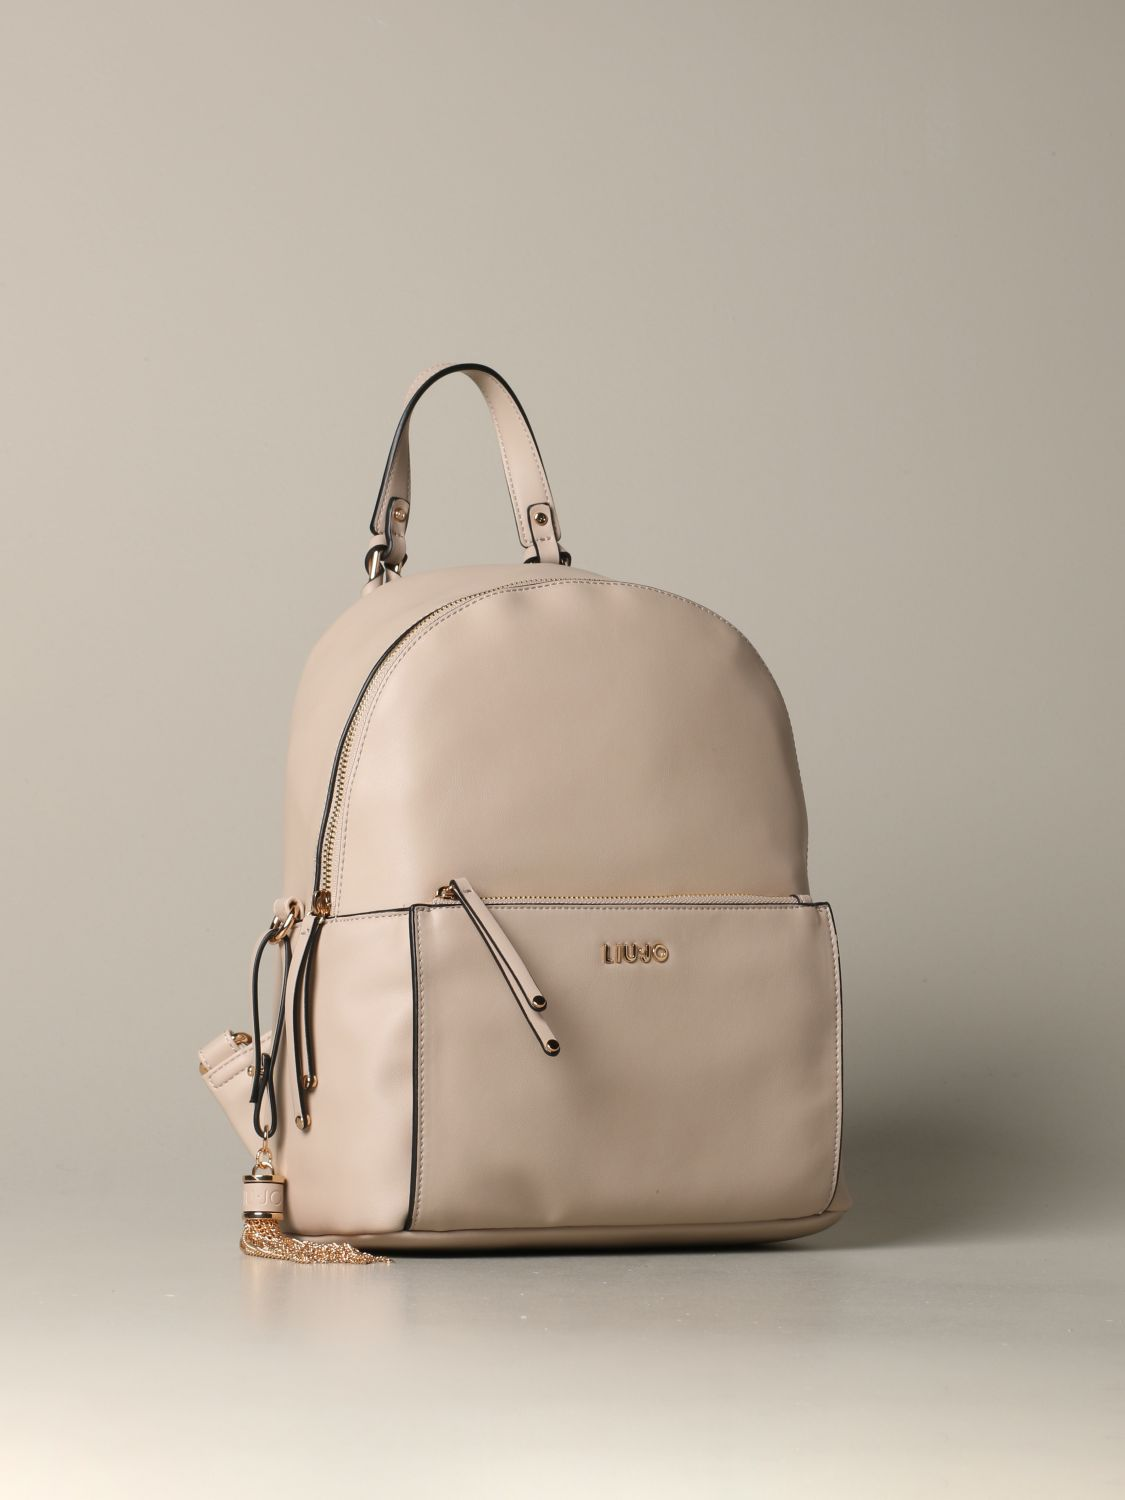 Liu Jo backpack in synthetic leather with logo beige 2